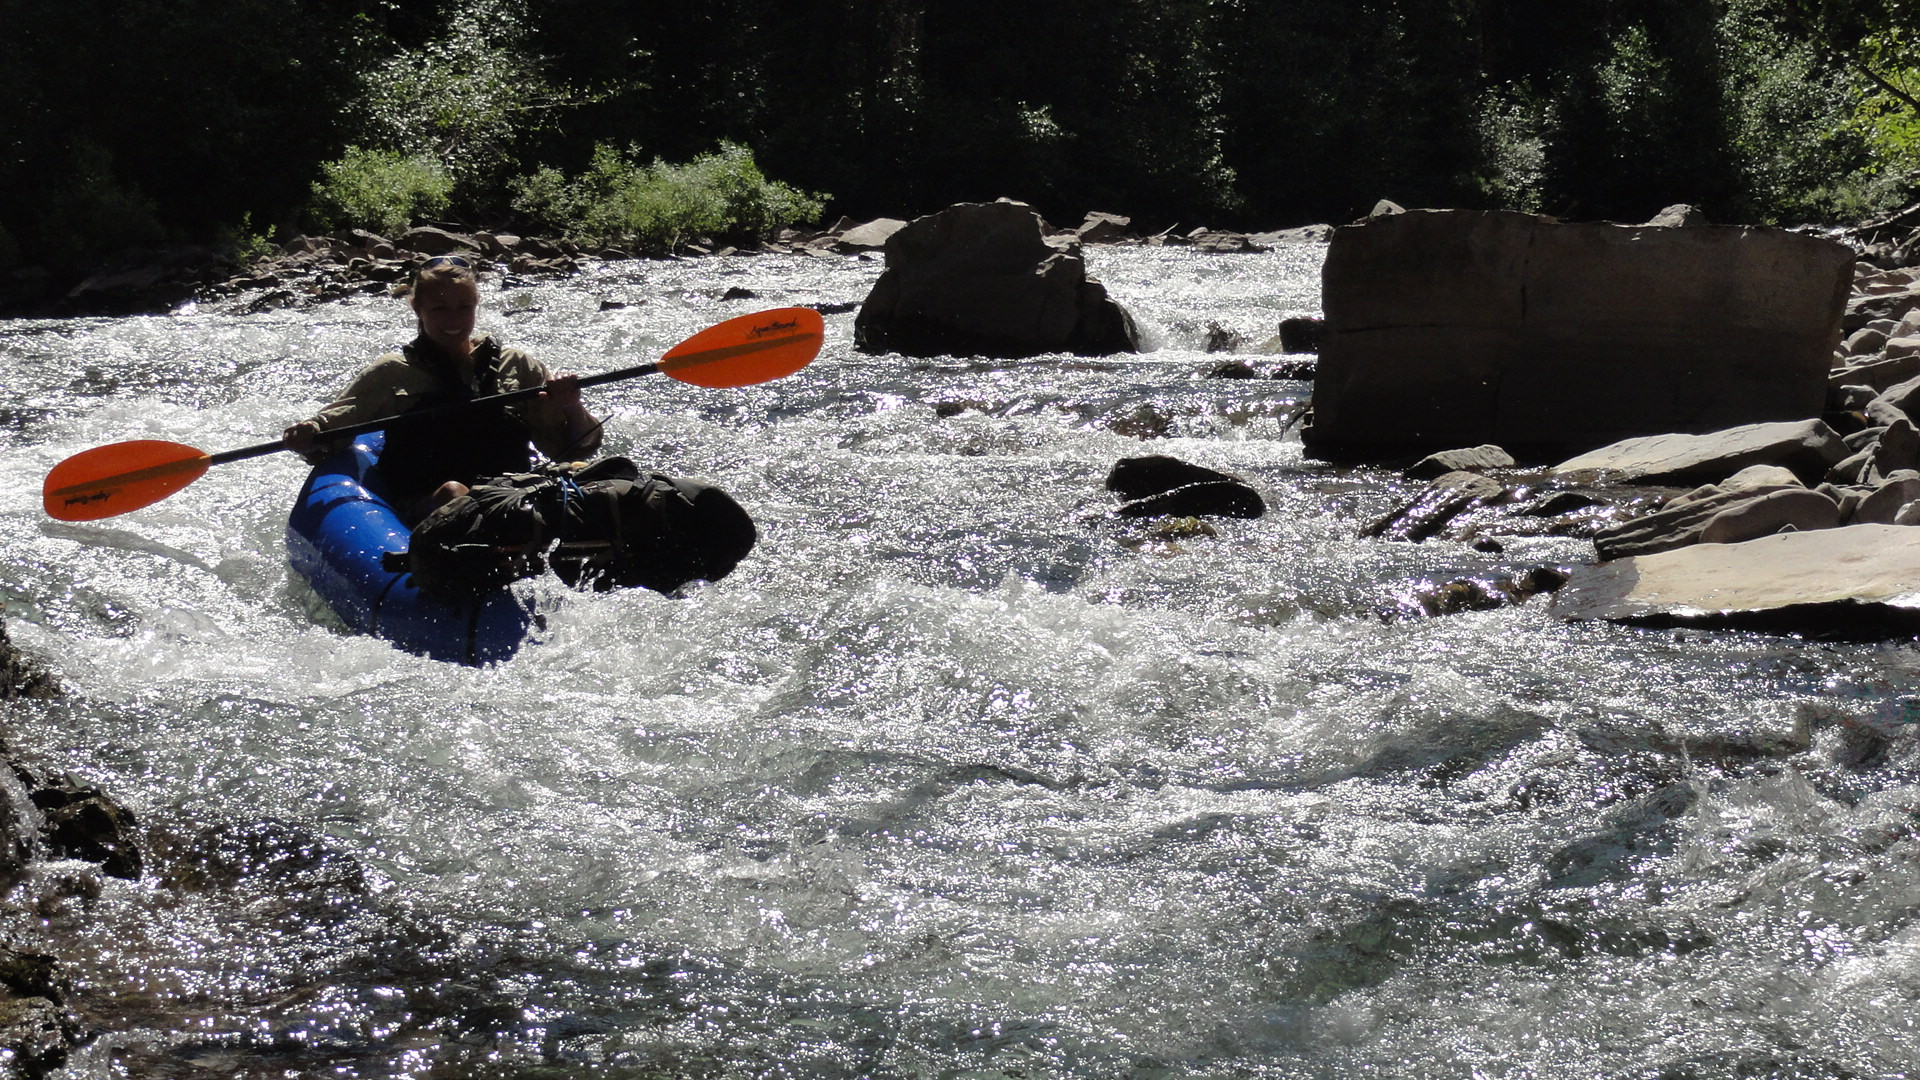 Packrafting in whitewater